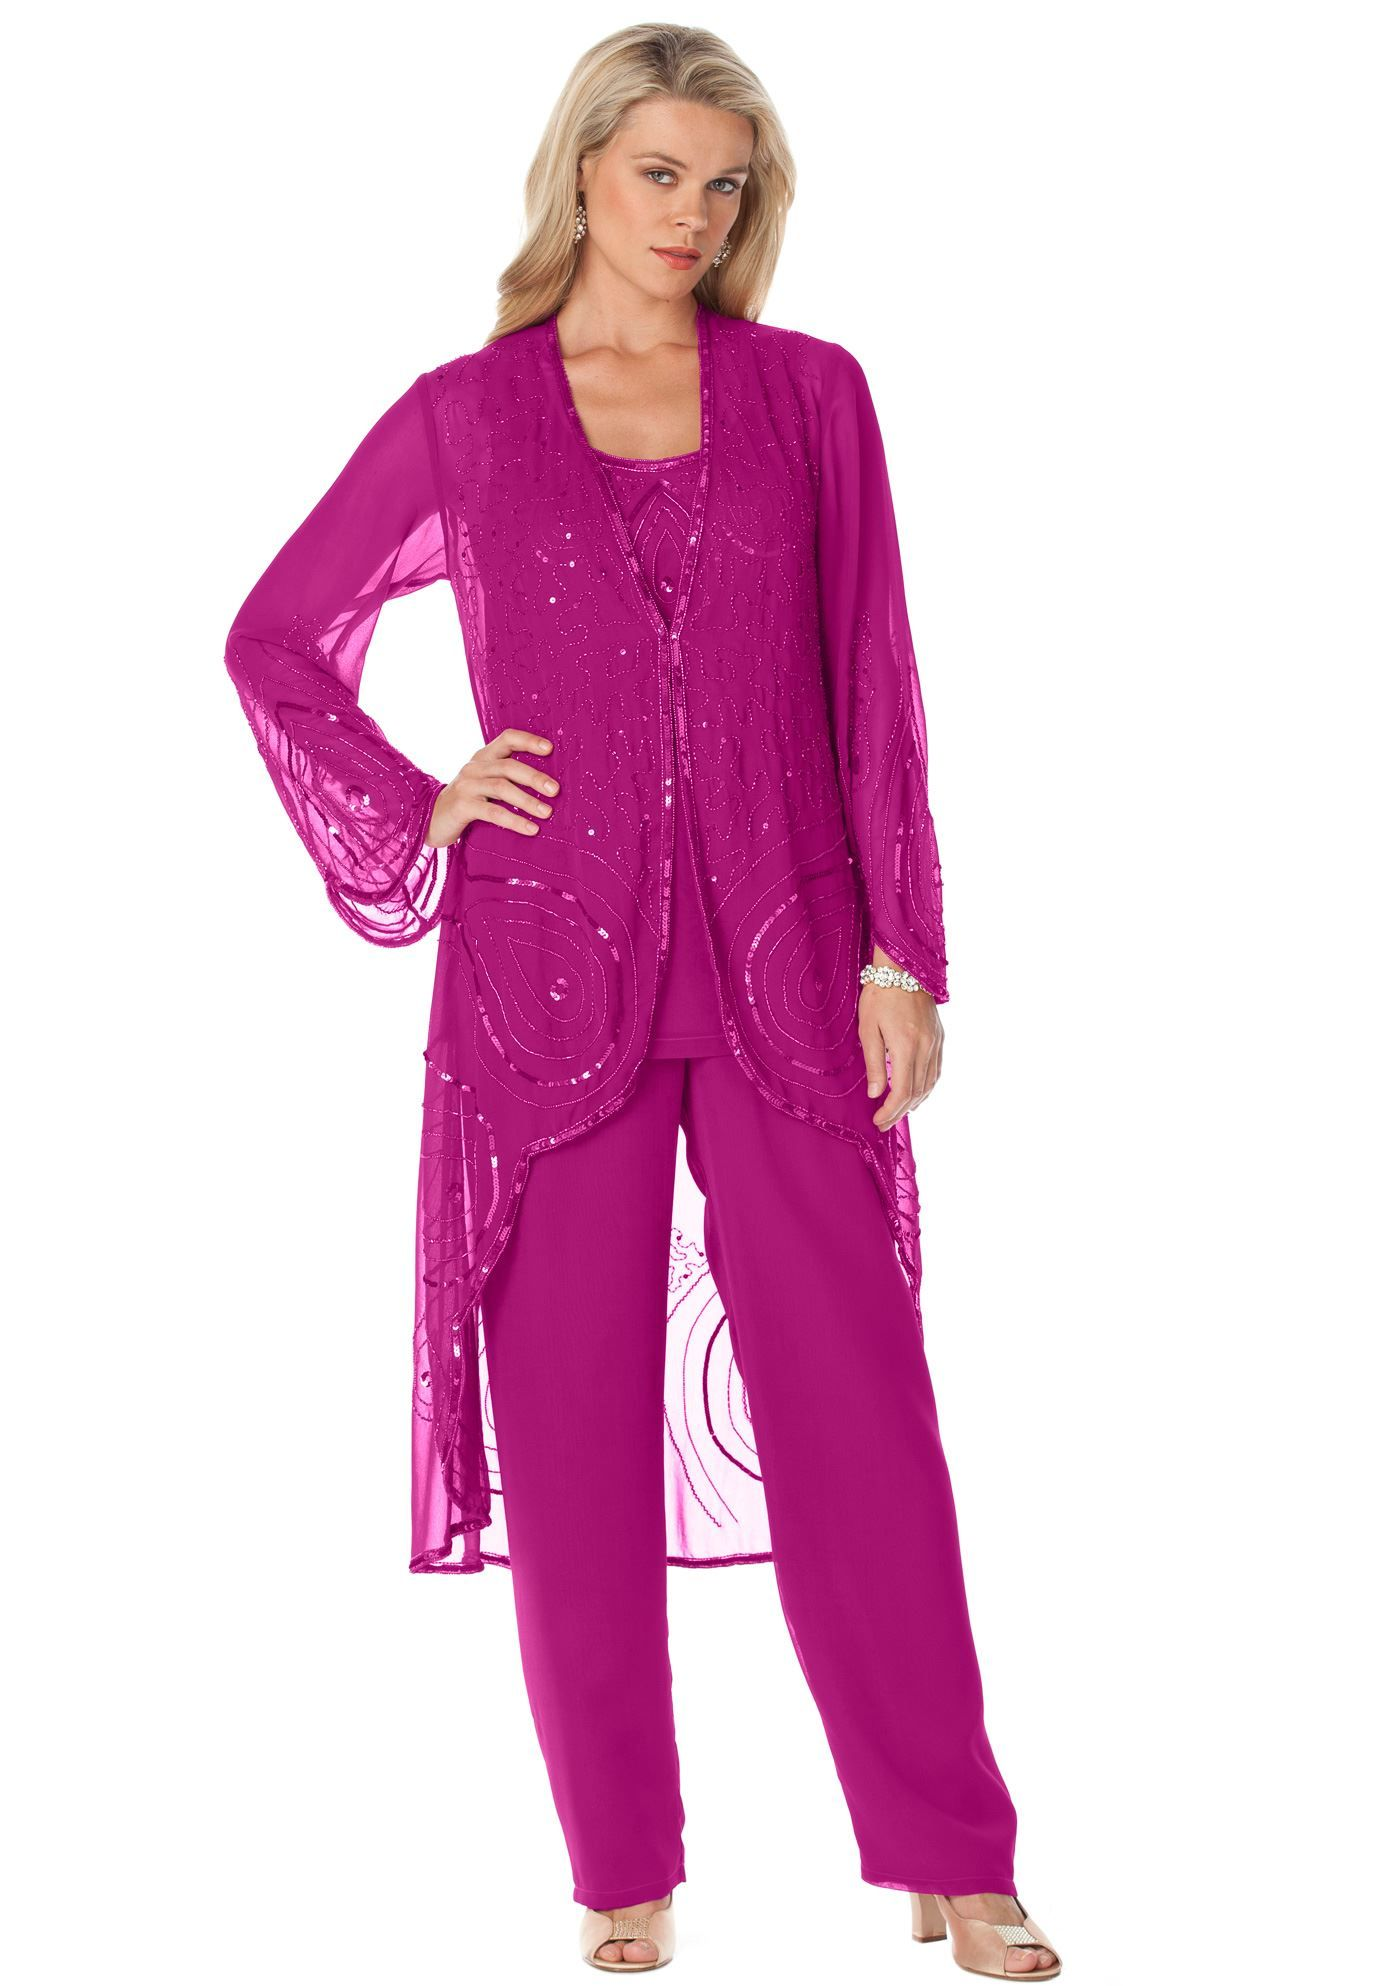 1a35795a24c Mother bride pant suits